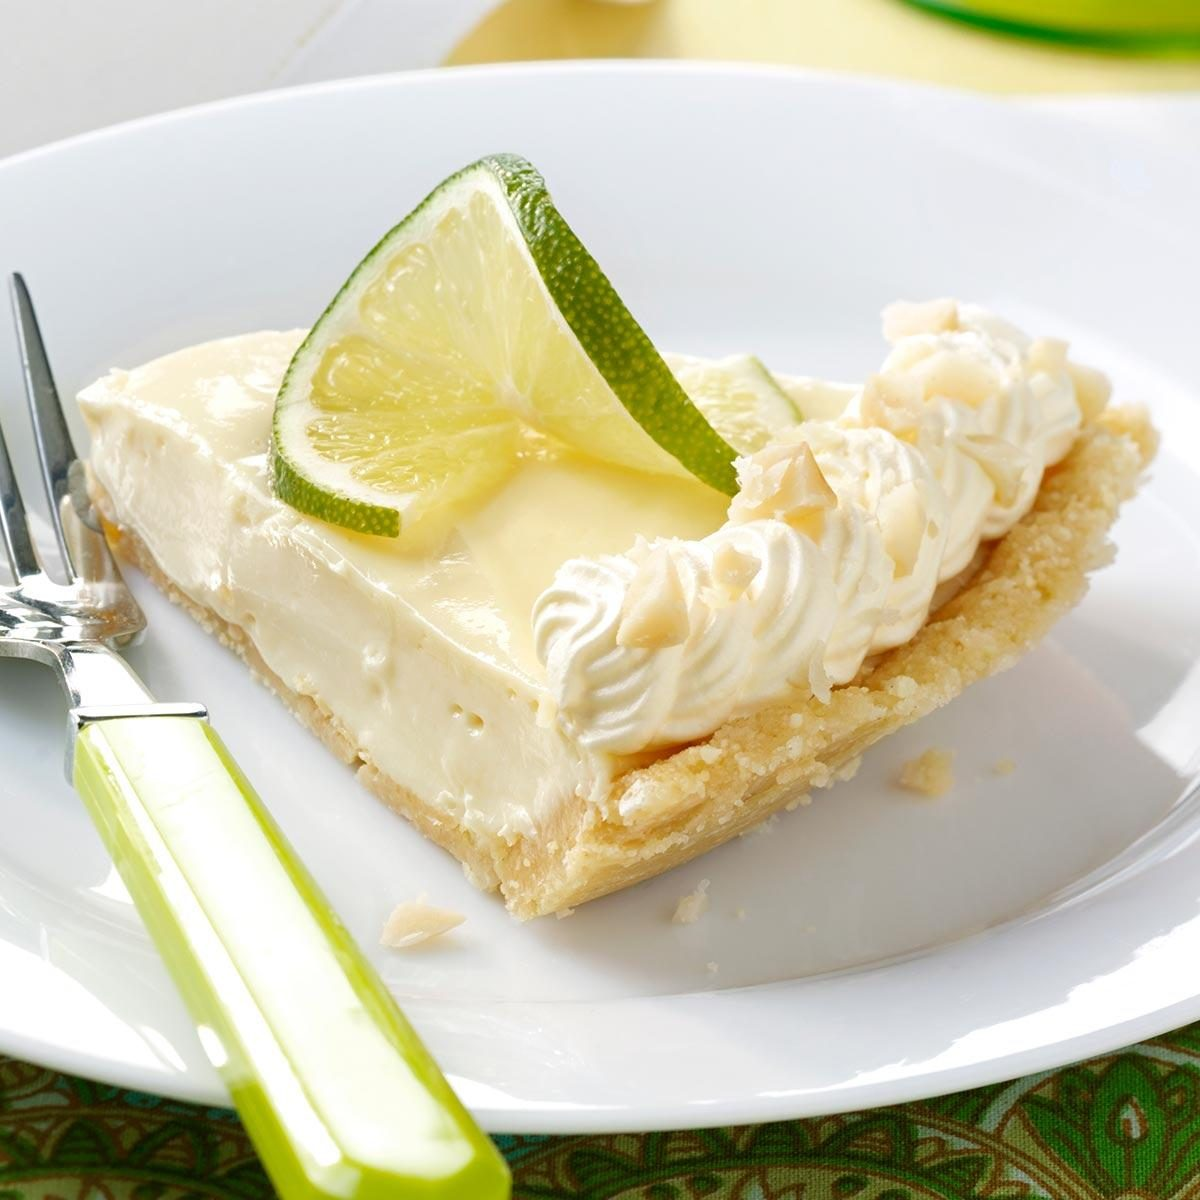 Macadamia Key Lime Pie Recipe | Taste of Home